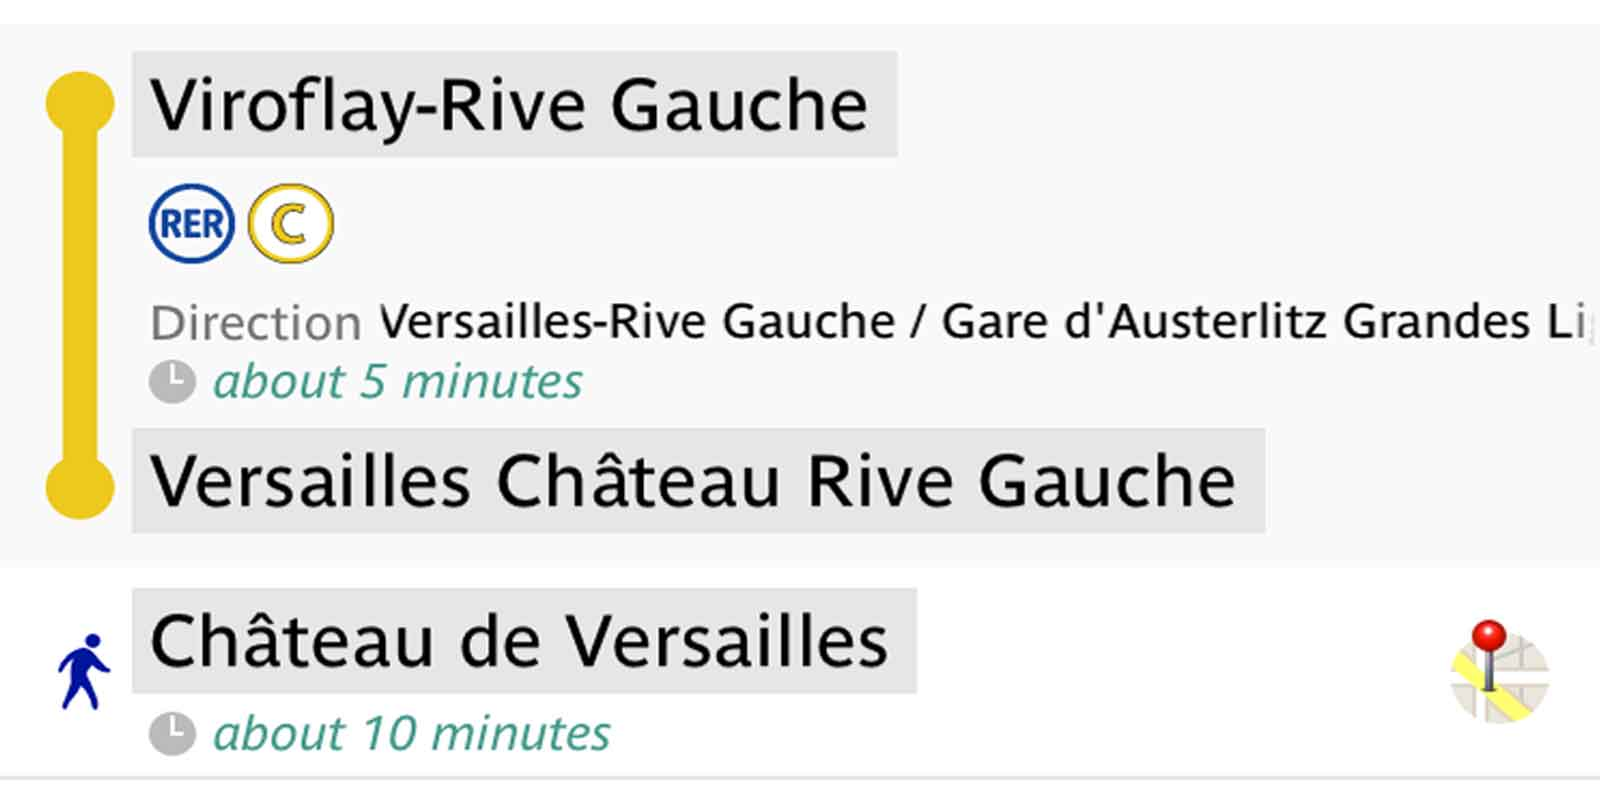 Screenshot of directions to Chateau de Versailles via Paris RER train.